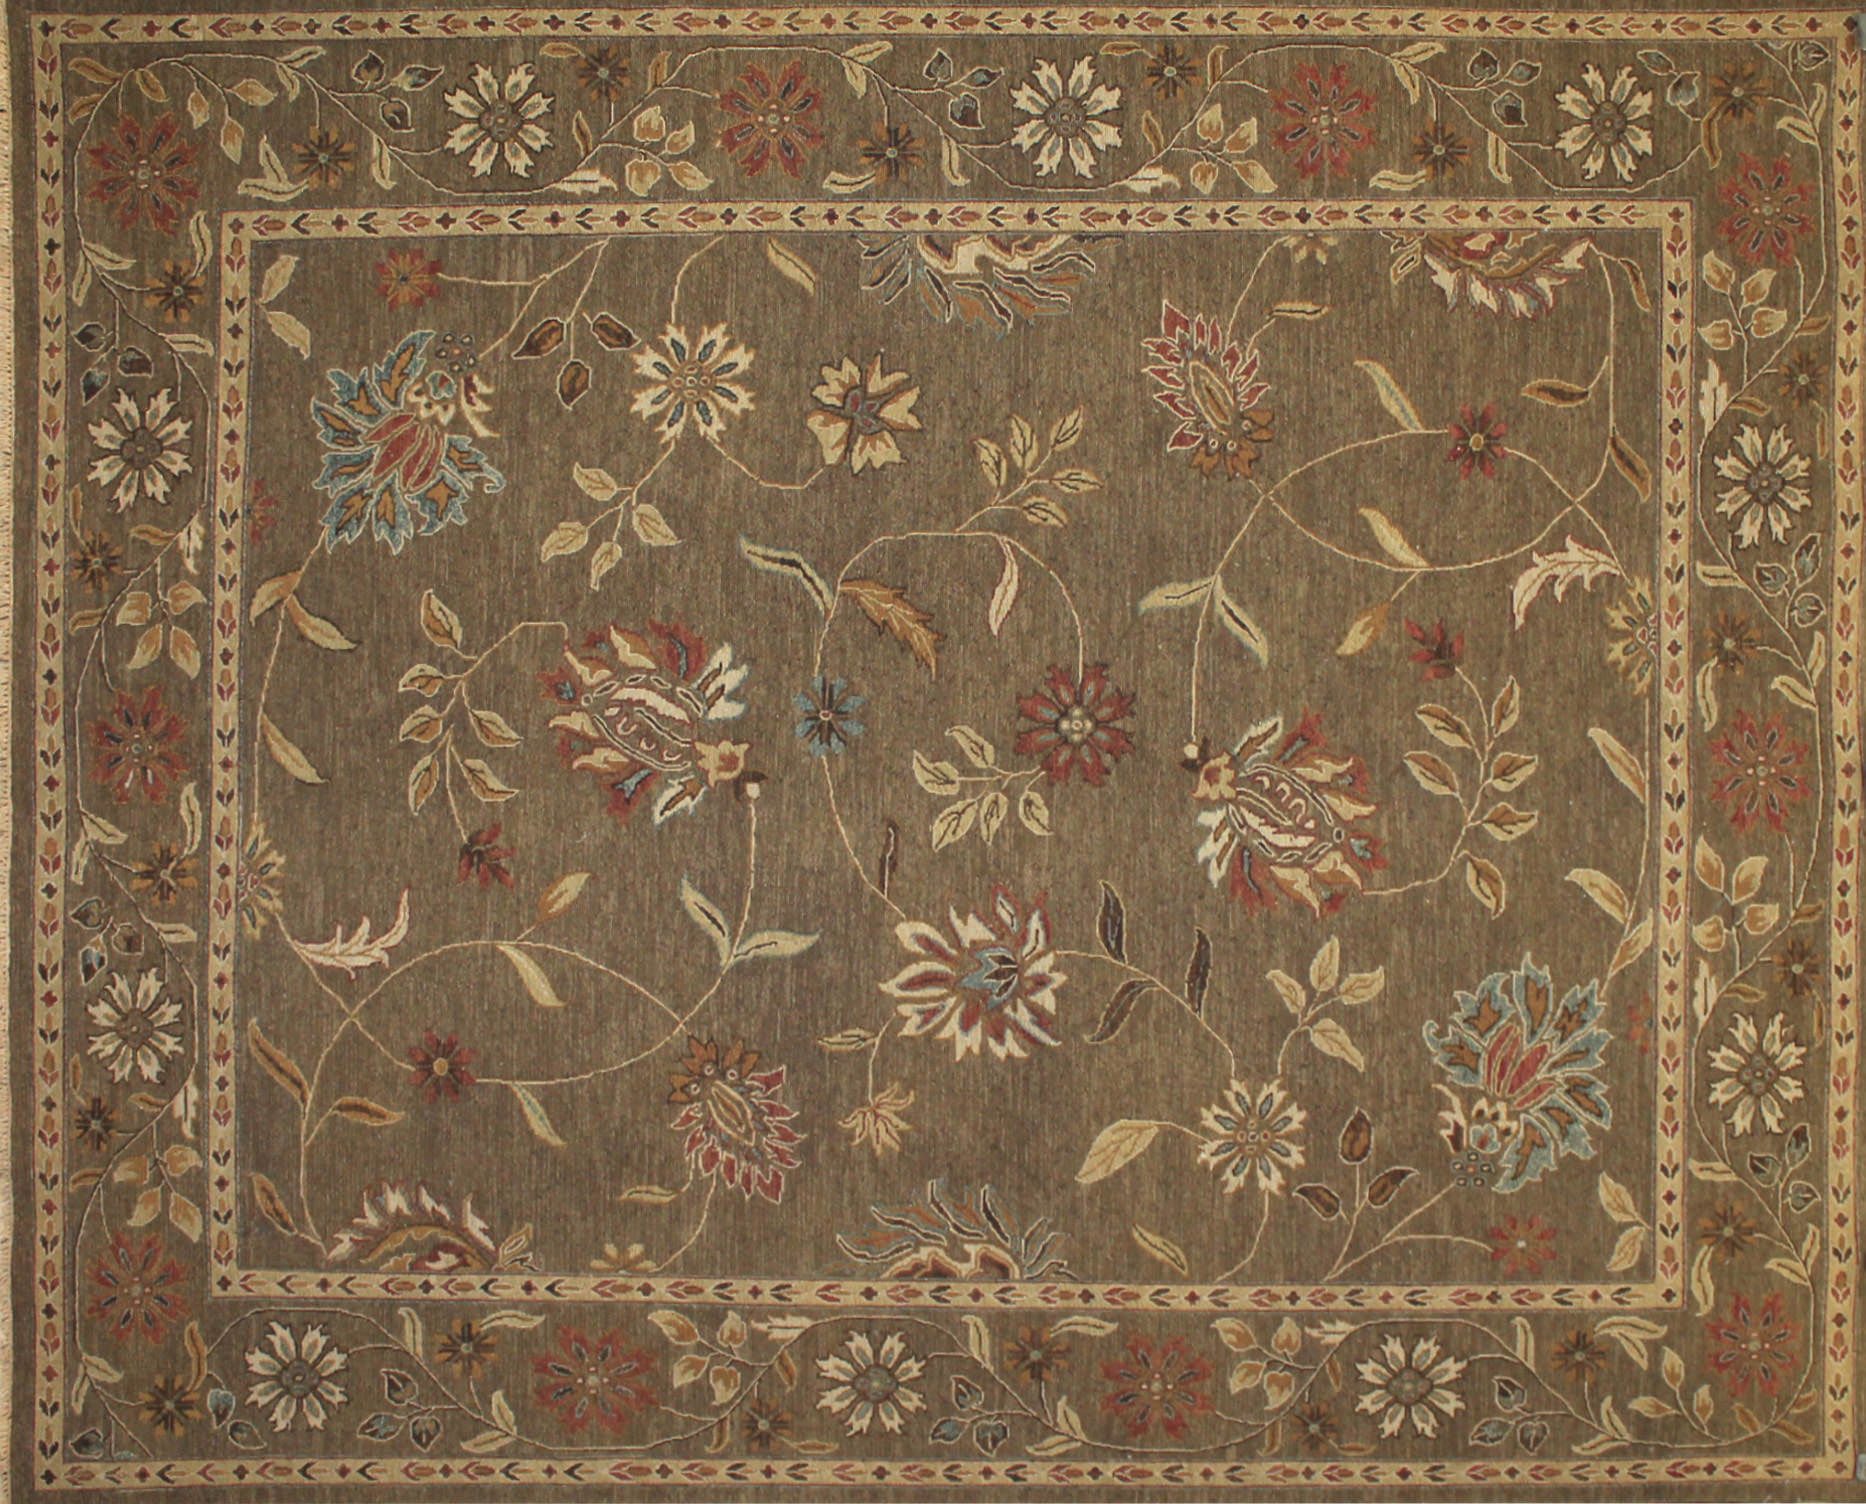 8x10 Flat Weave Hand Knotted Wool Area Rug - MR17662